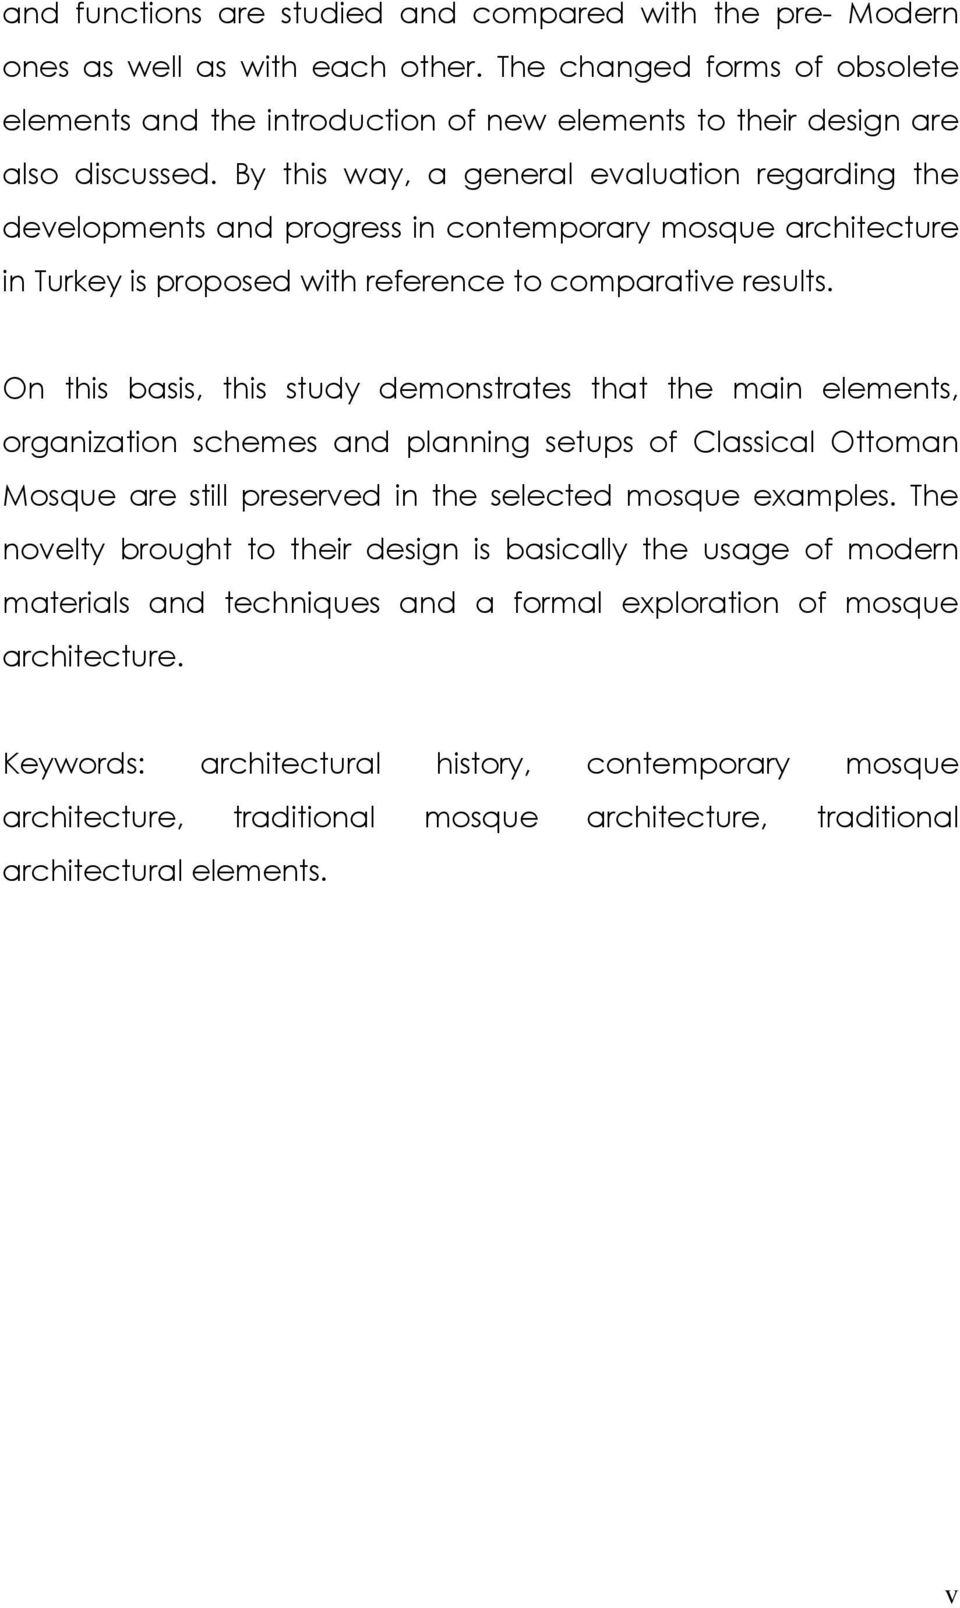 By this way, a general evaluation regarding the developments and progress in contemporary mosque architecture in Turkey is proposed with reference to comparative results.